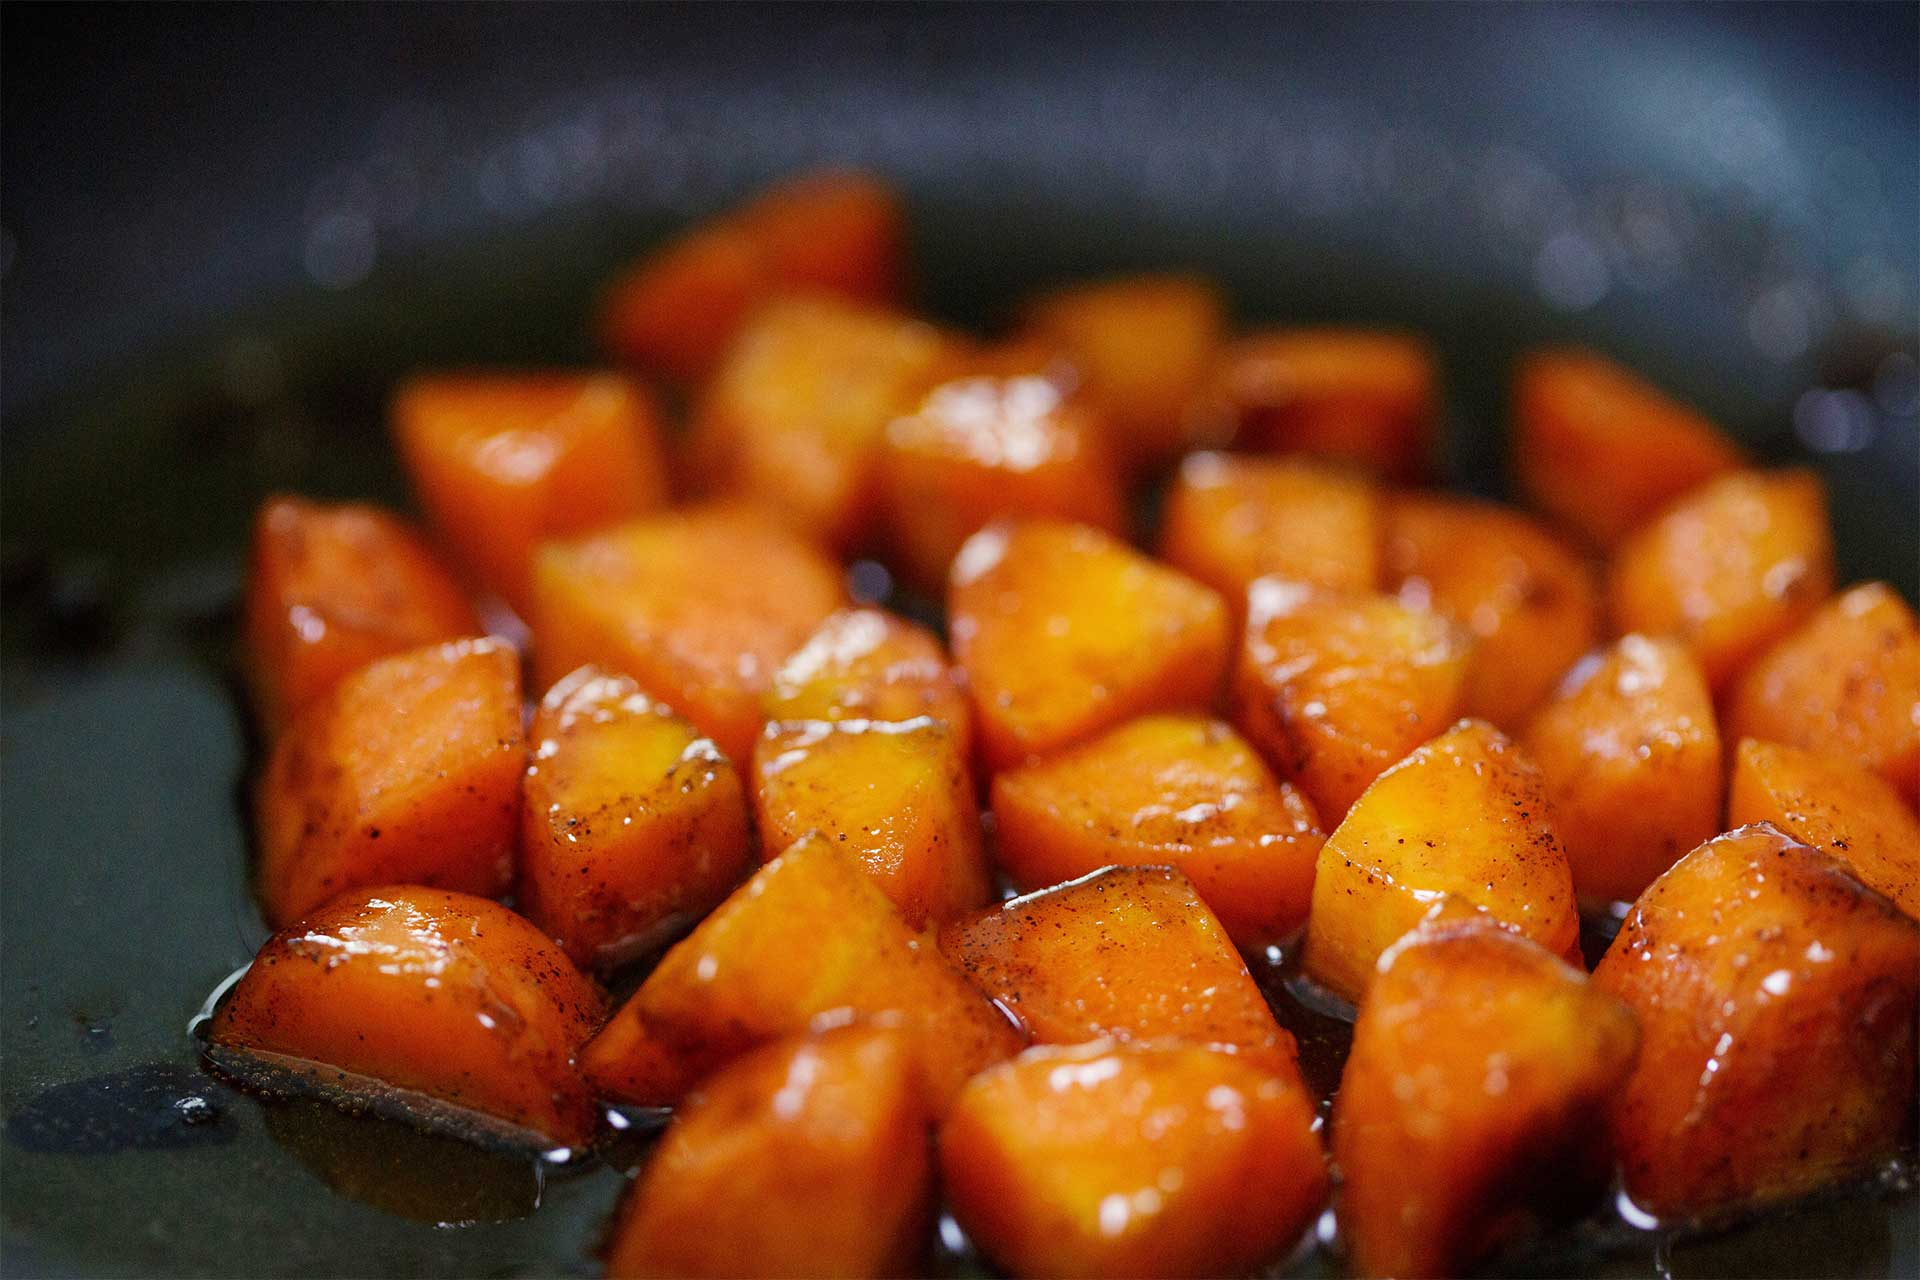 Making the honey glazed carrots